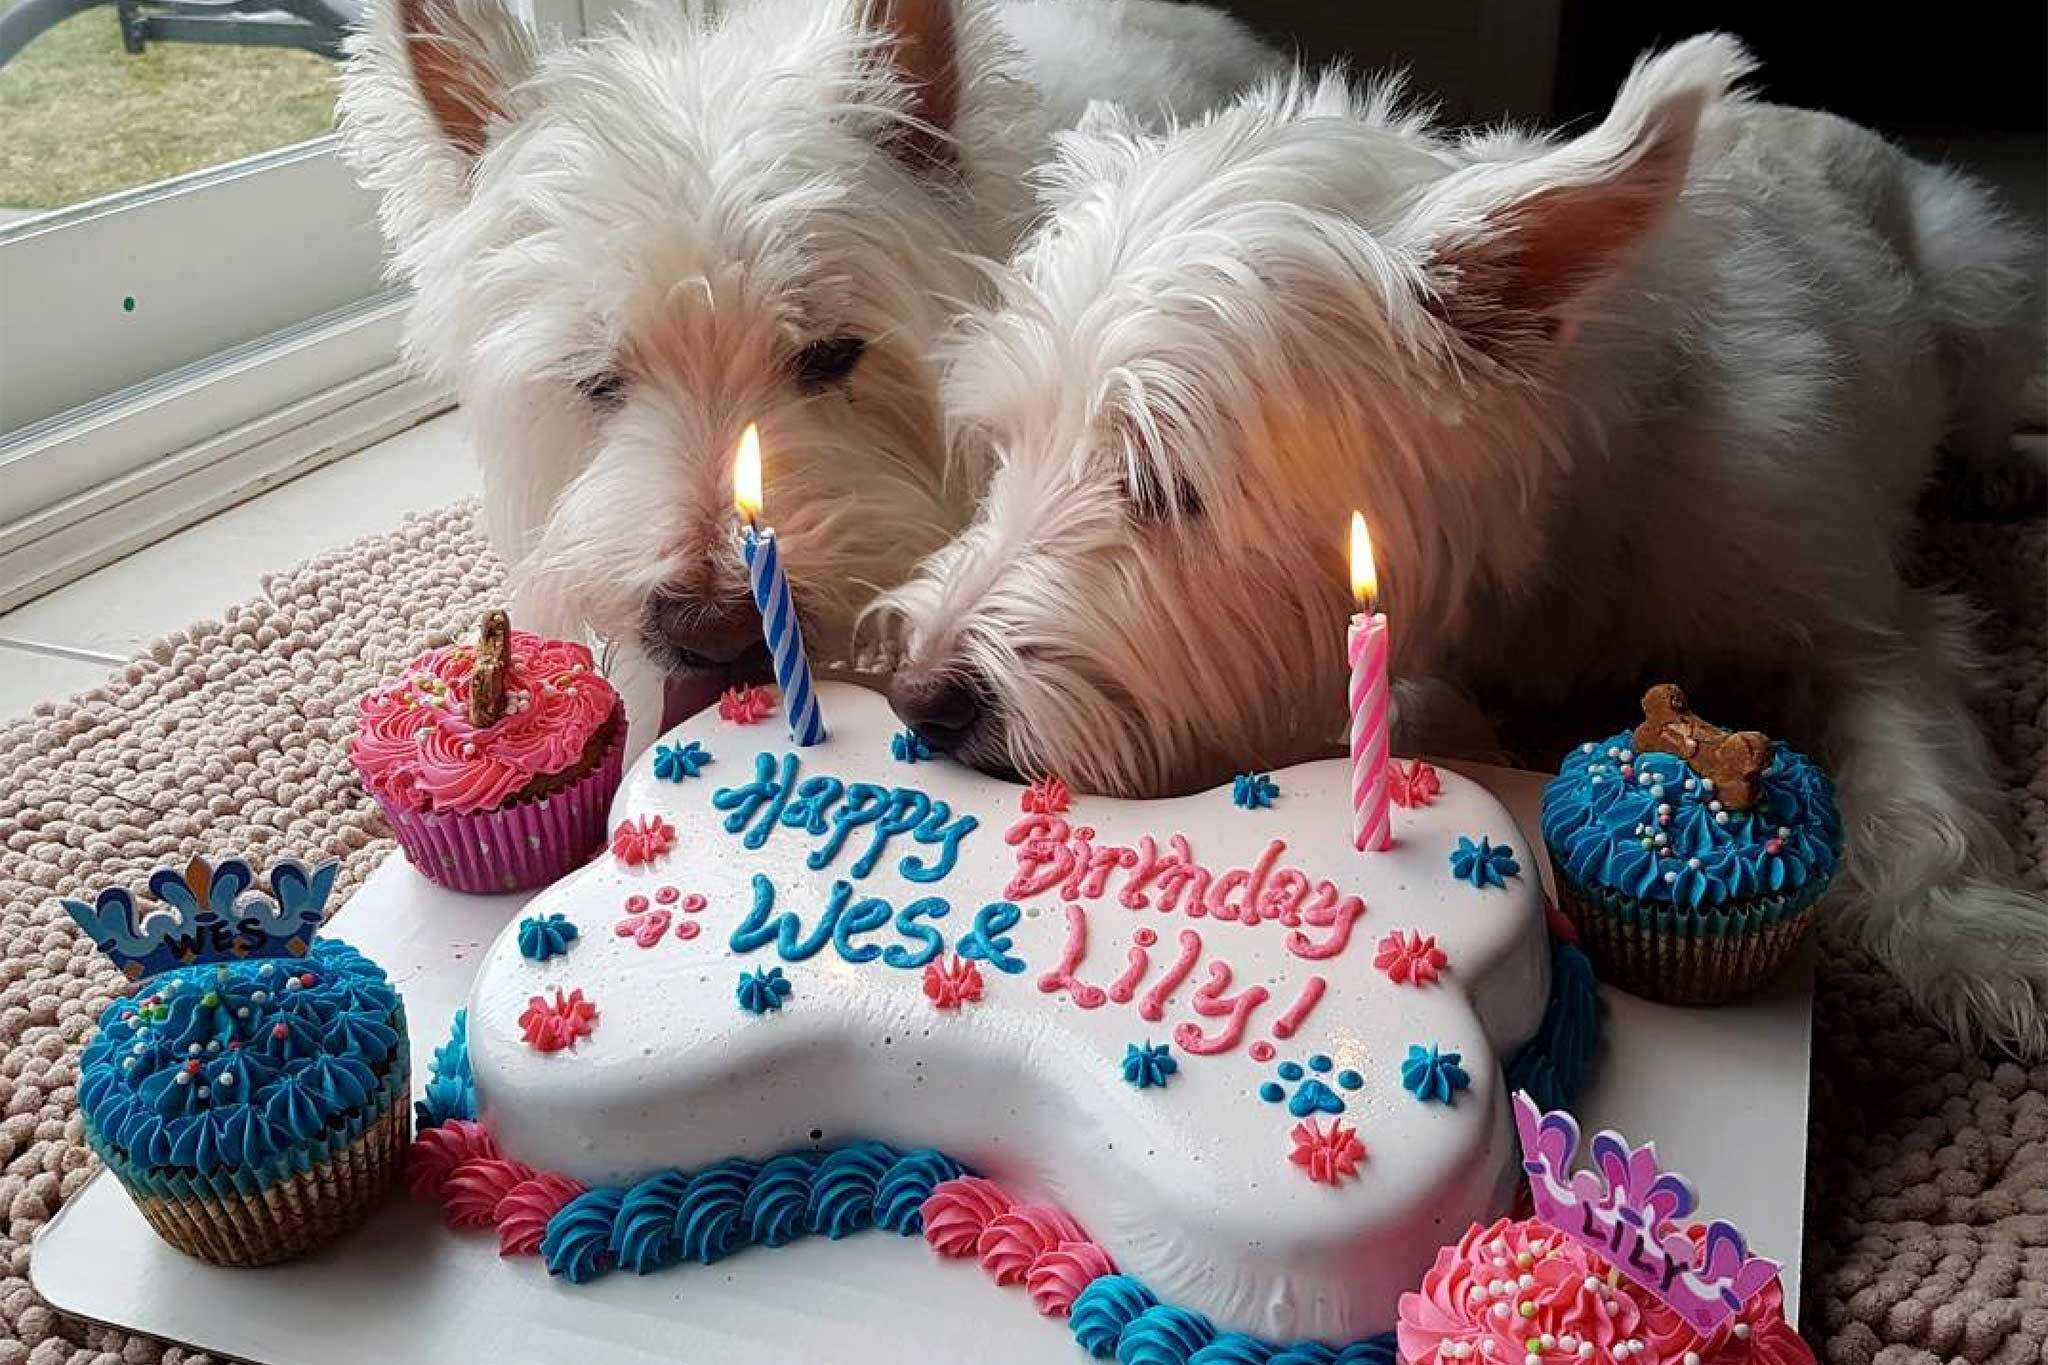 Dog Friendly Birthday Cake Humans Can Eat